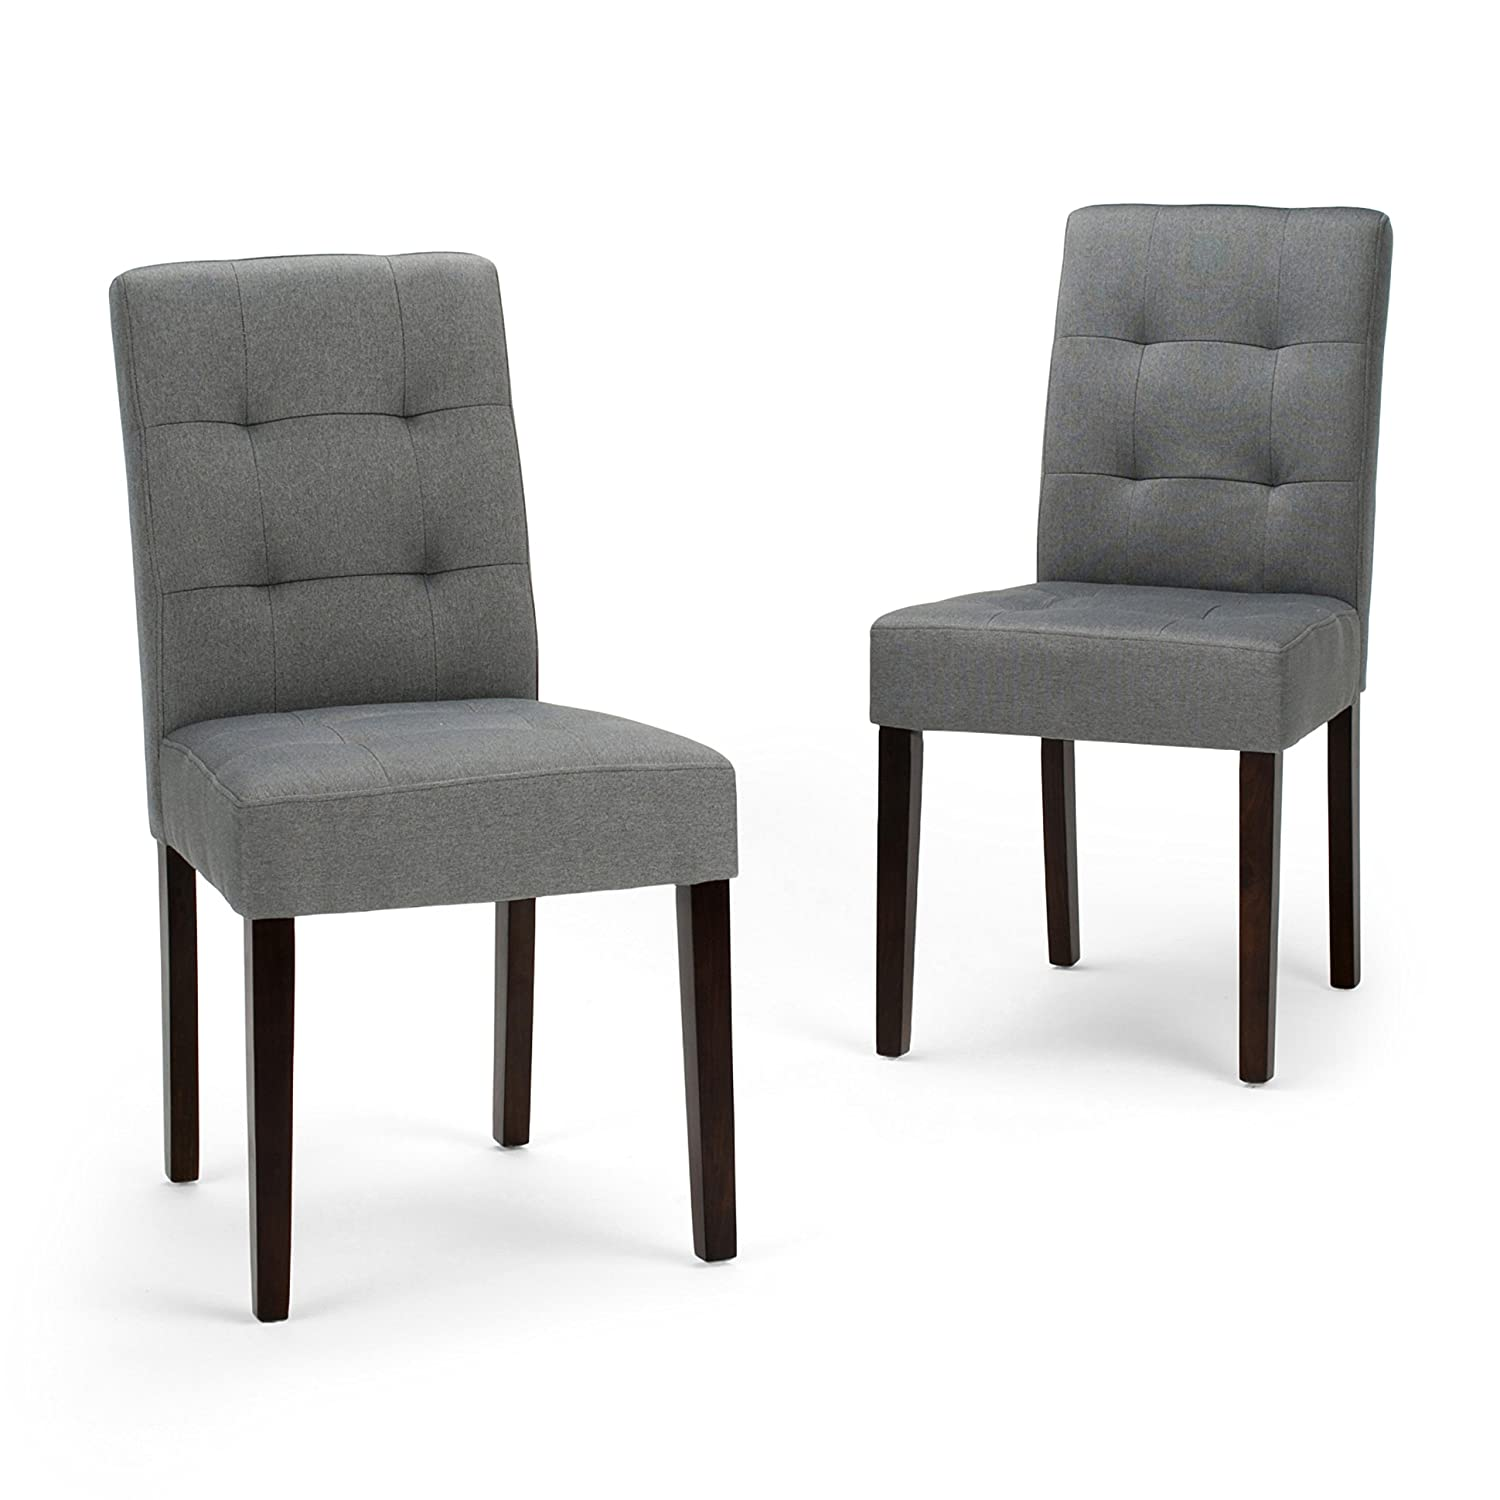 Simpli Home AXCDCHR-004-GL Andover Contemporary Dining Chair Set of 2 in Denim Grey Linen Look Fabric